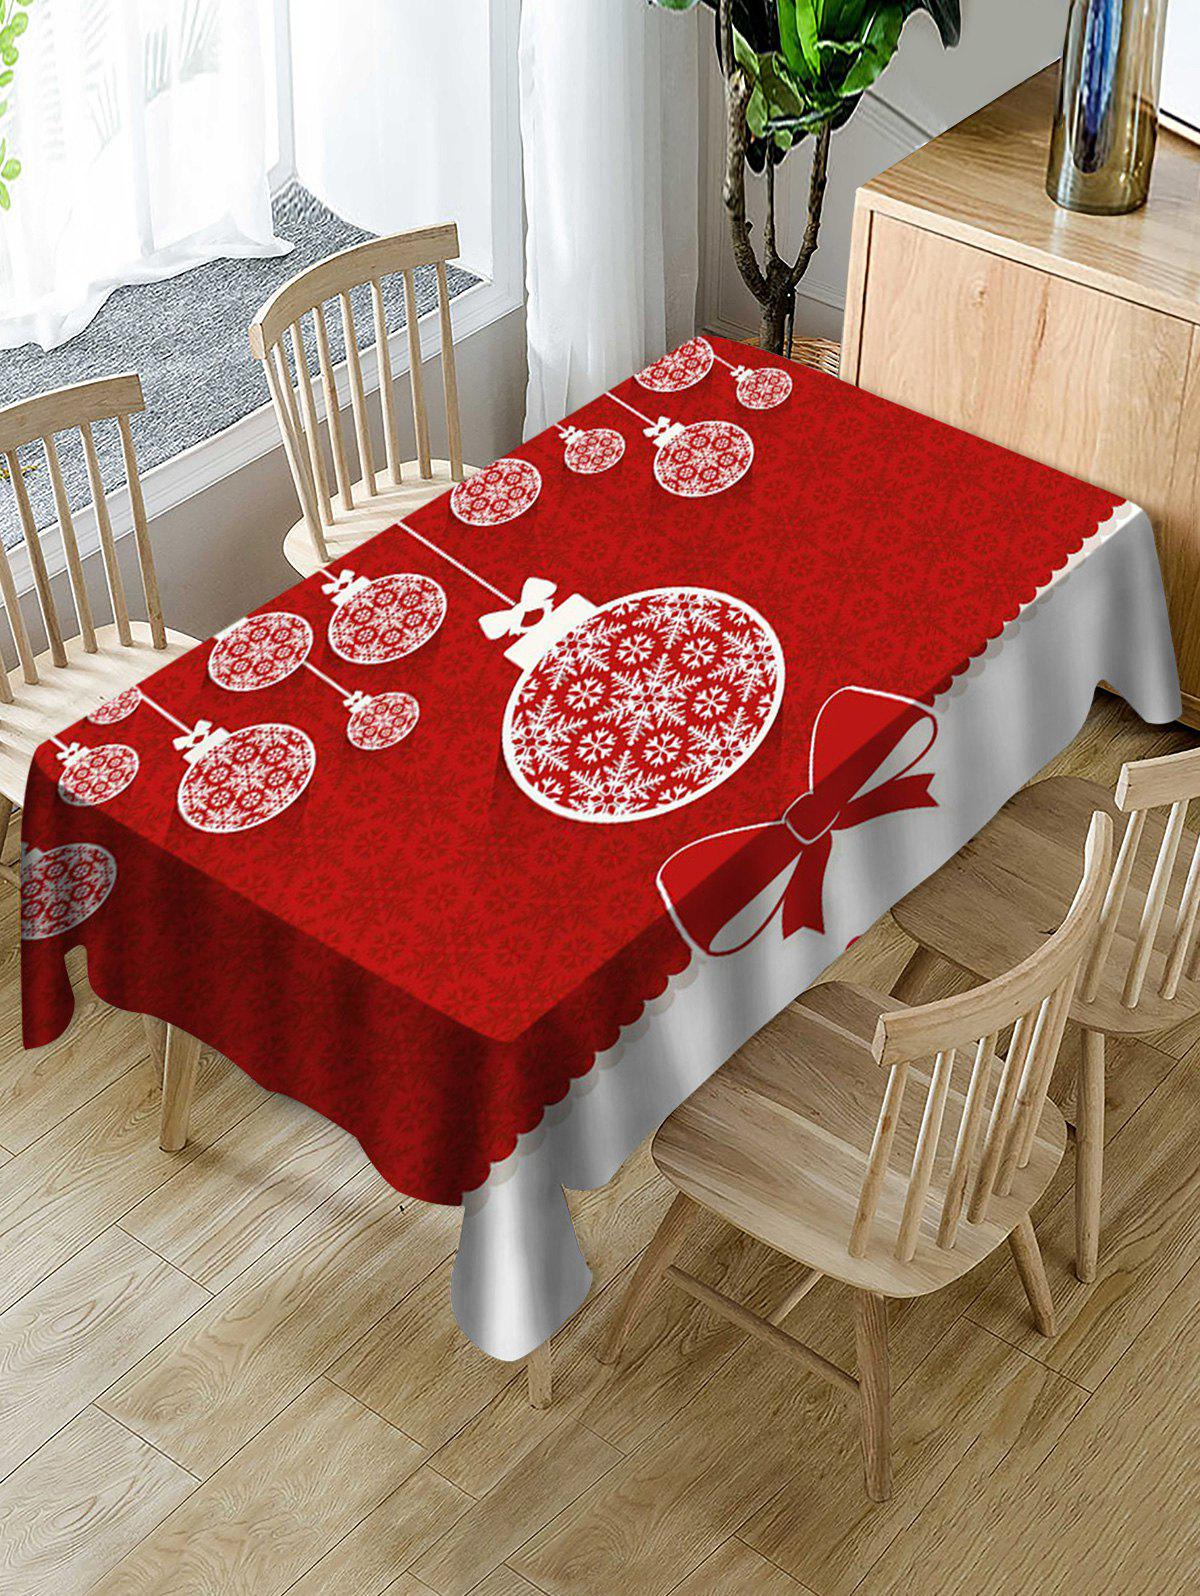 Fashion Christmas Snowflake Ball Print Fabric Waterproof Tablecloth